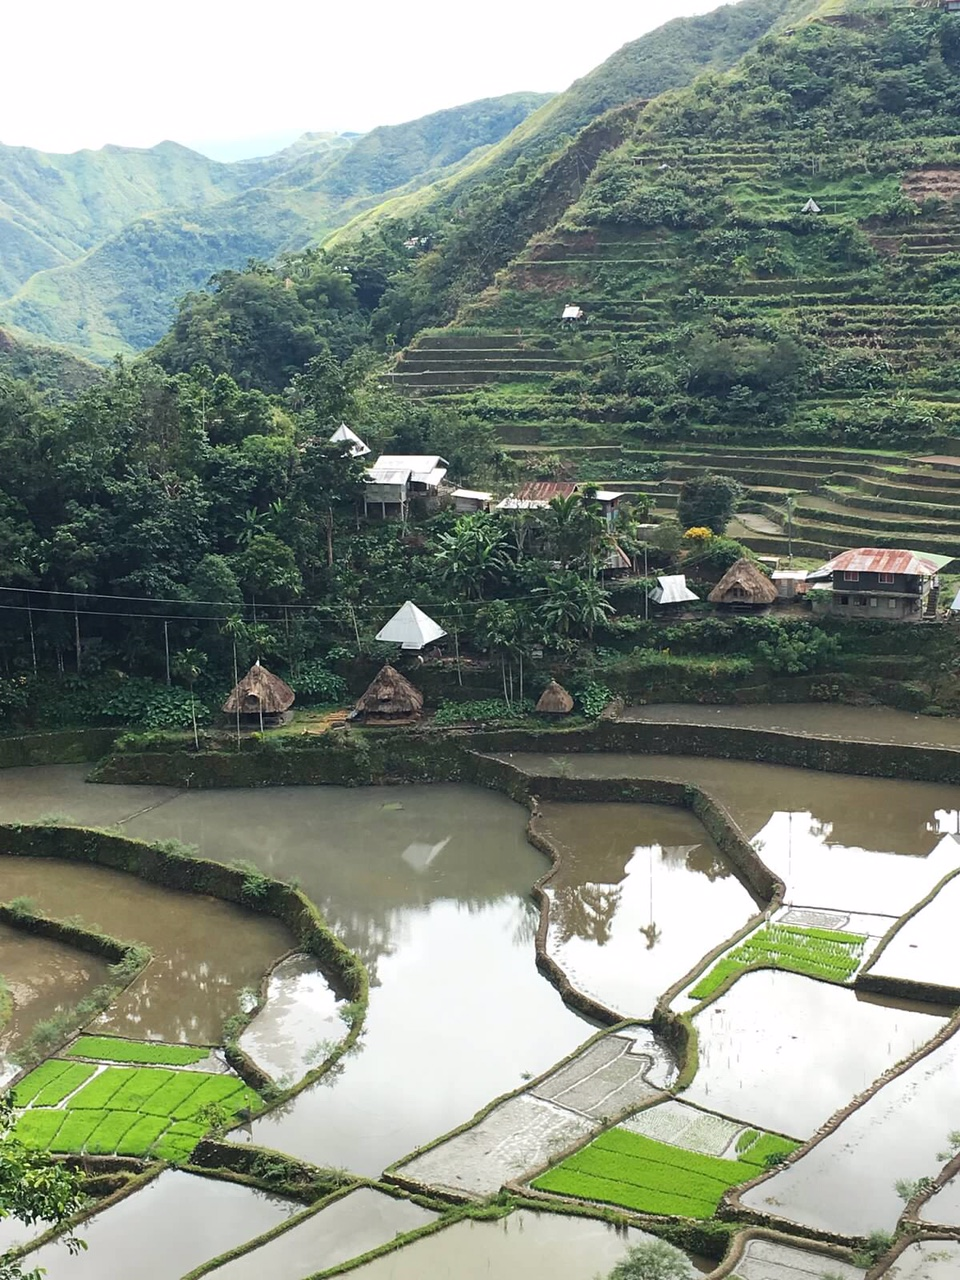 Batad rice terraces in November